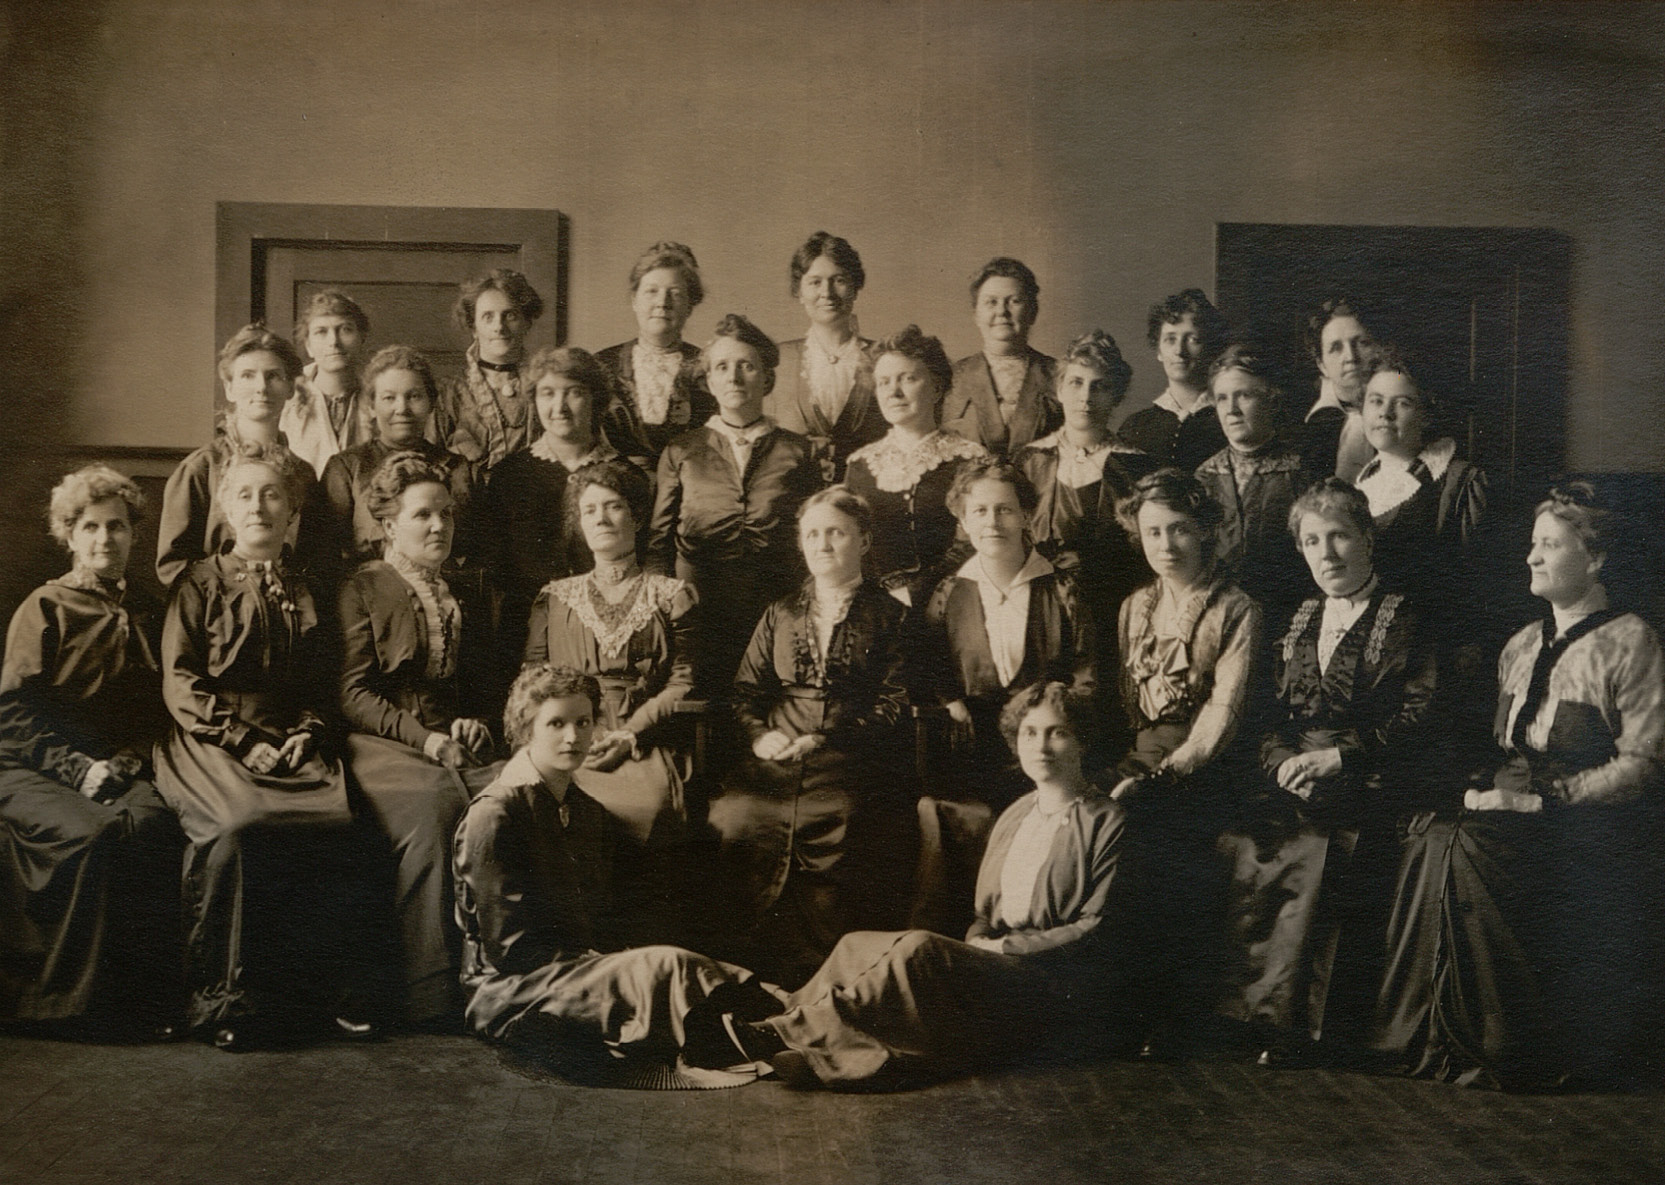 Young Ladies' Mutual Improvement Association general board, circa 1905. The first YLMIA general board was organized in 1880 under Elmina S. Taylor. The board members traveled, coordinated the efforts of local associations, corresponded with local units, conducted training, developed curriculum and programs and spoke at MIA June Conferences starting in 1896.